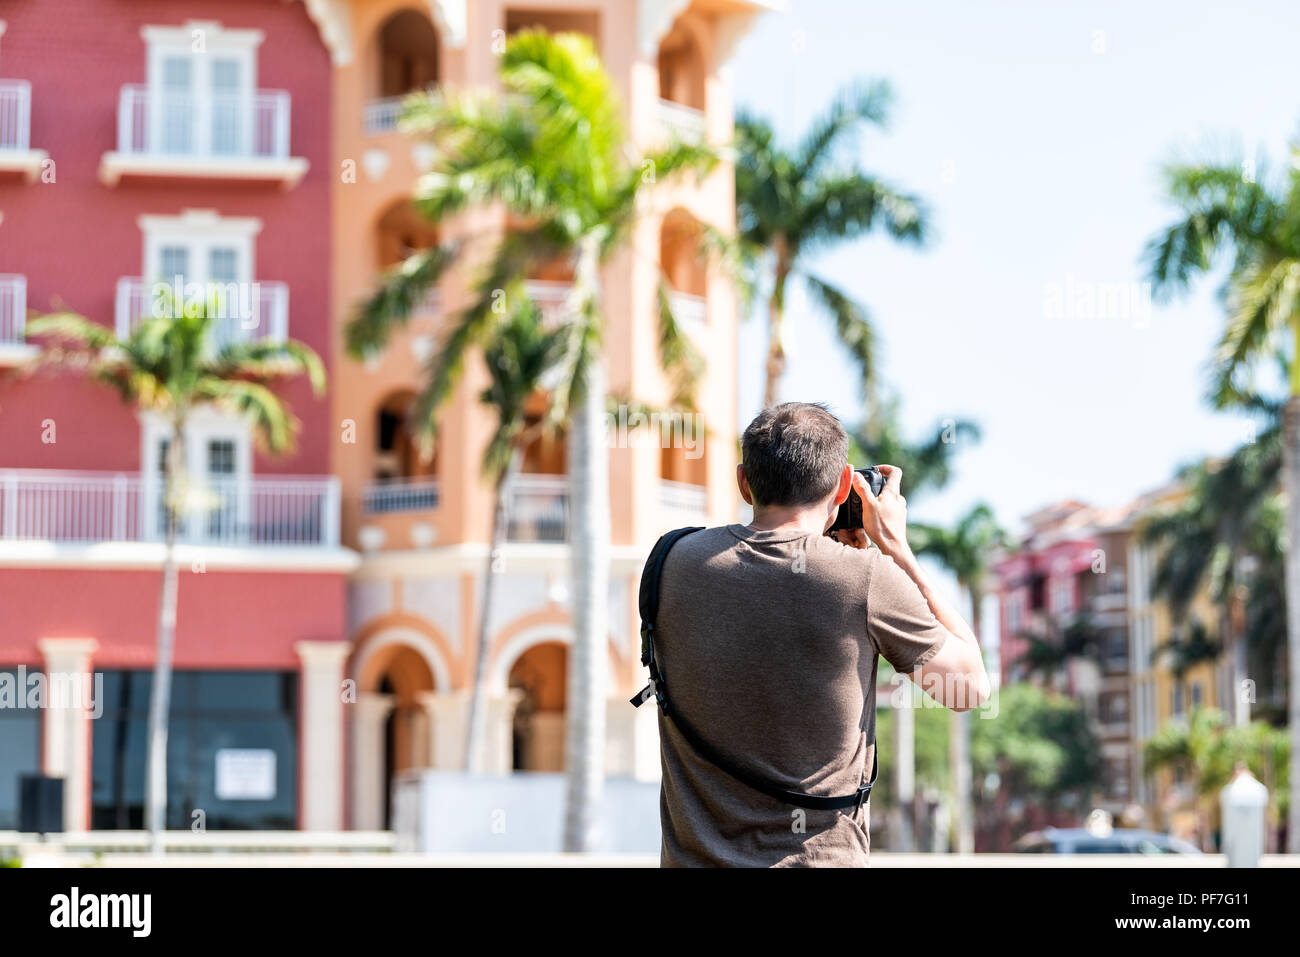 Closeup of young man photographer, photographing, taking pictures of colorful multicolored buildings in Florida or Spain during sunny day, condos, con - Stock Image